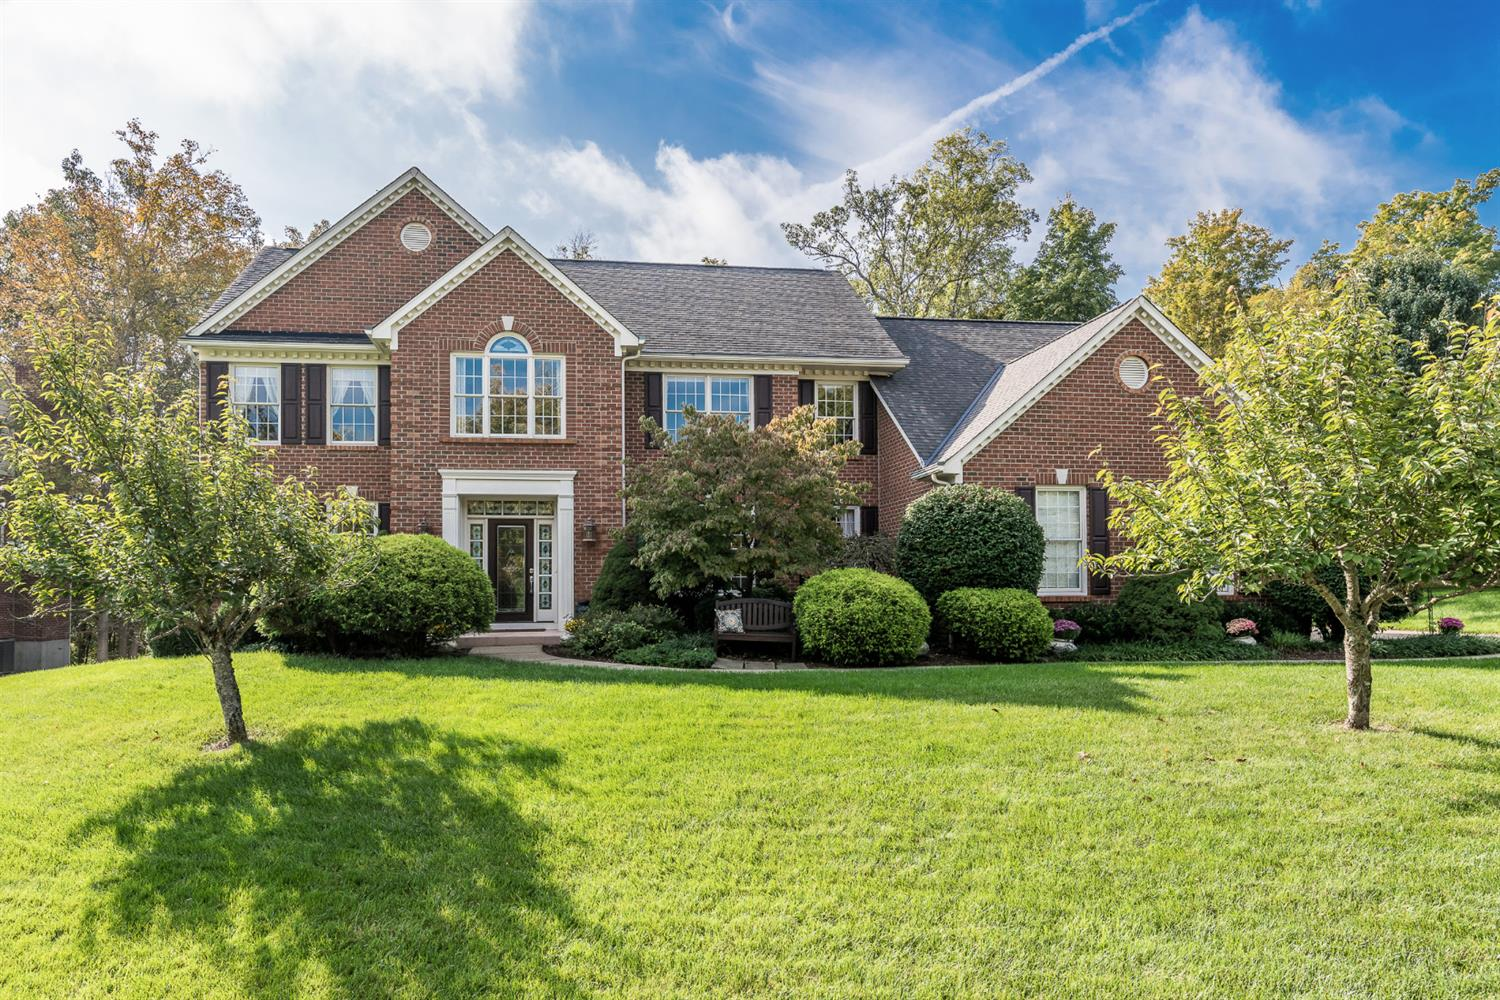 Property for sale at 8243 Castle Pines Lane, Anderson Twp,  OH 45244